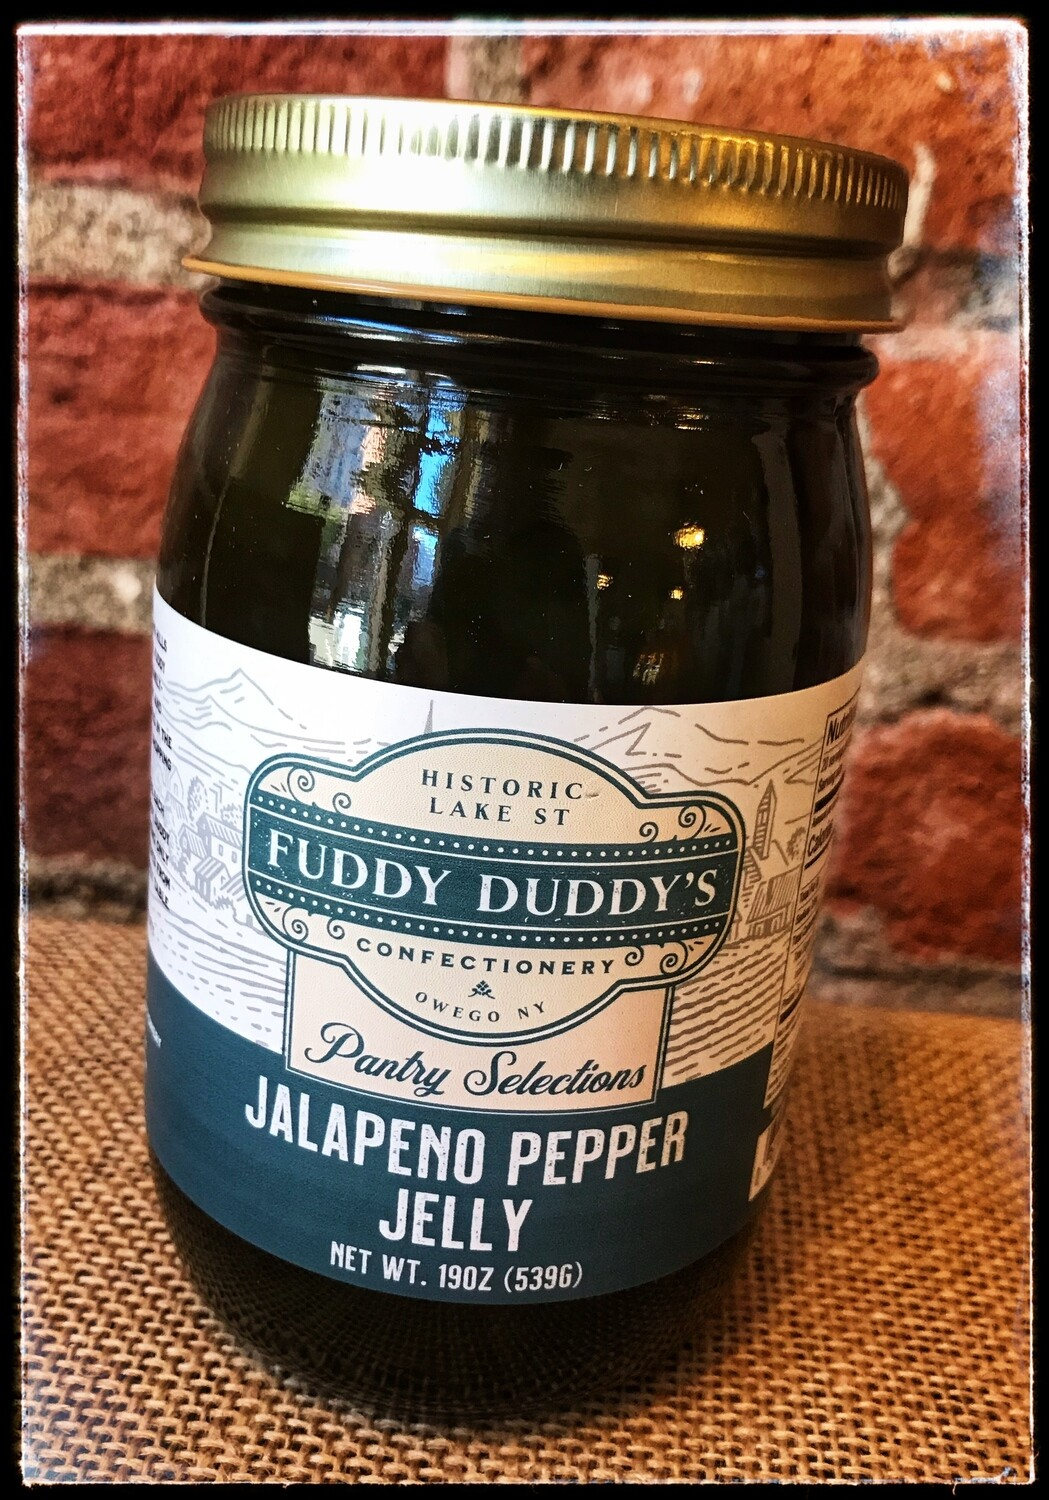 Fuddy Duddy's Jalapeno Pepper Jelly